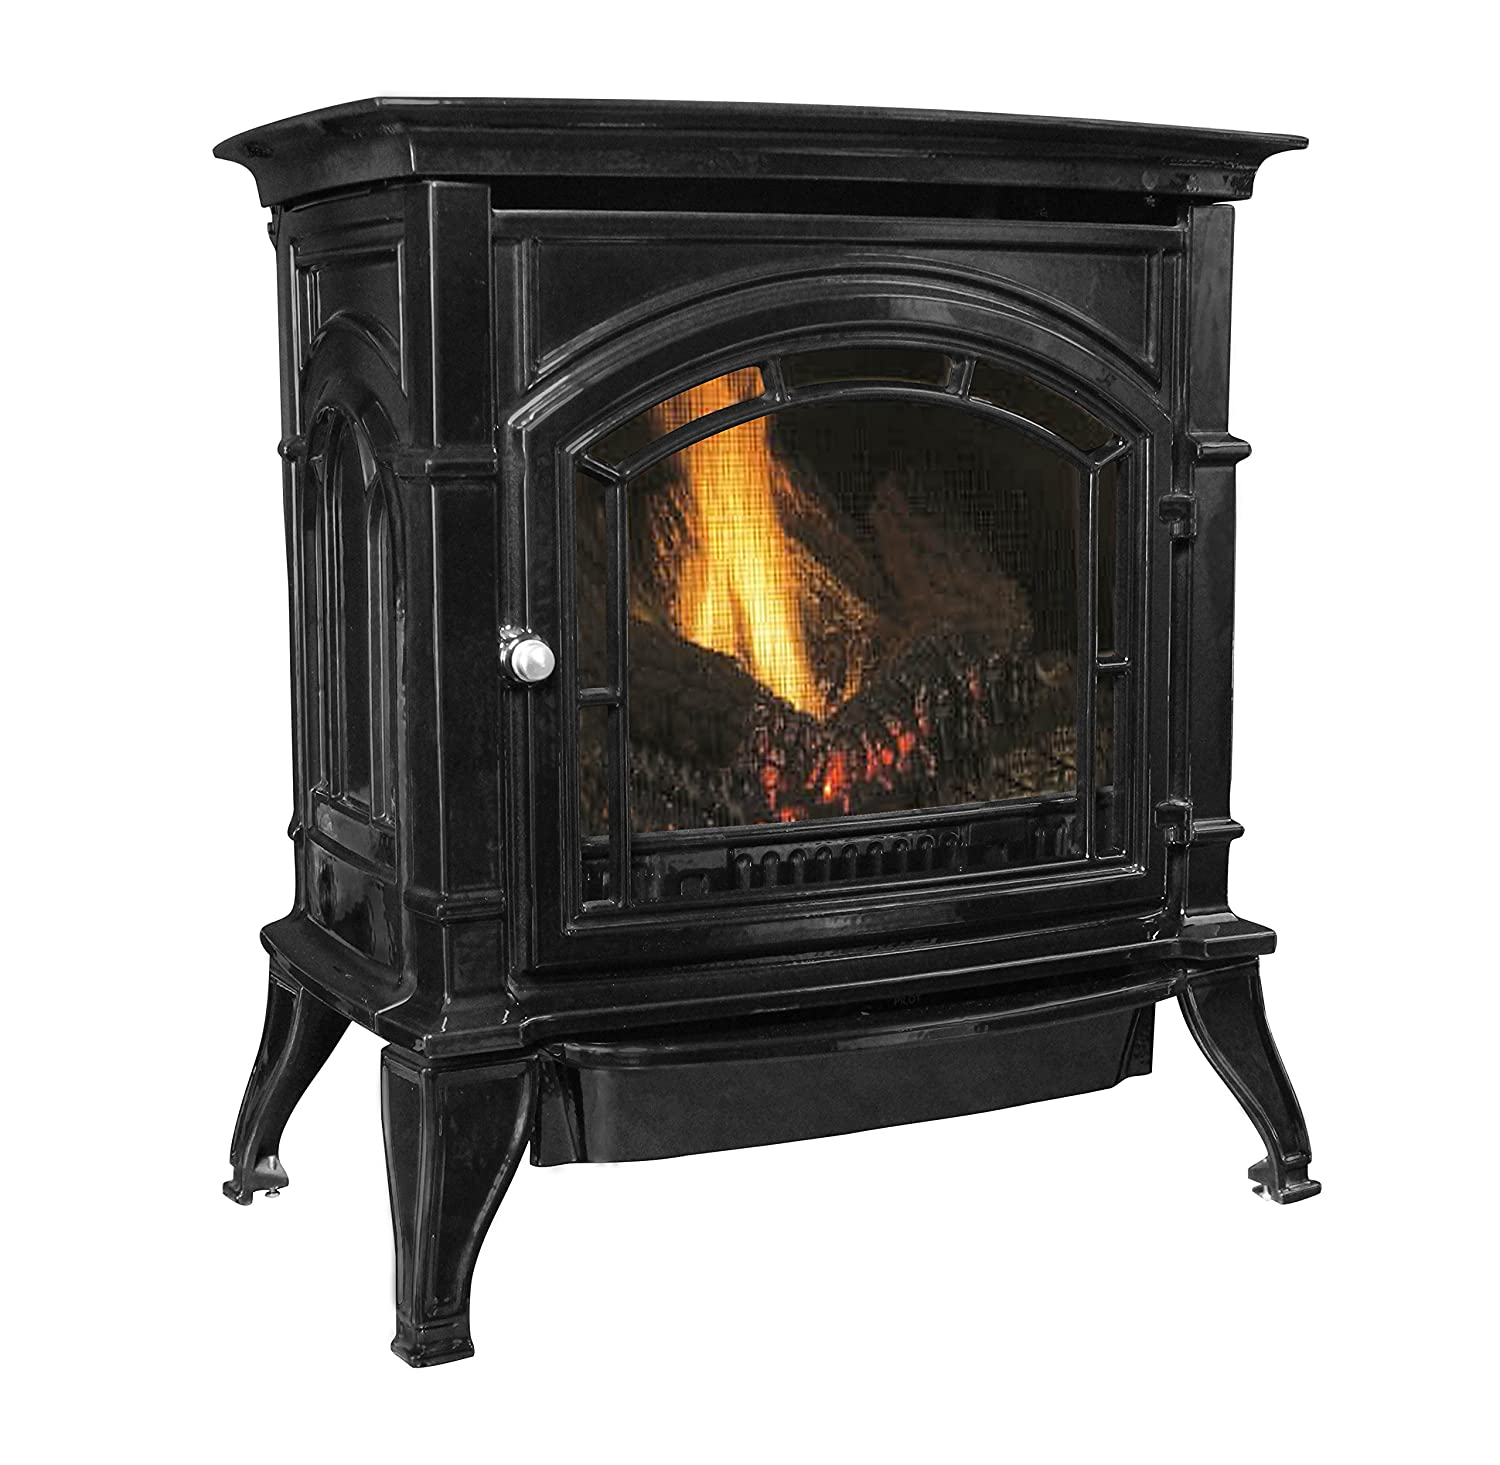 Ashley AGC500VFBLP Vent-Free Black Enameled Porcelain Cast Iron Stove, 31,000 BTUs (Propane)